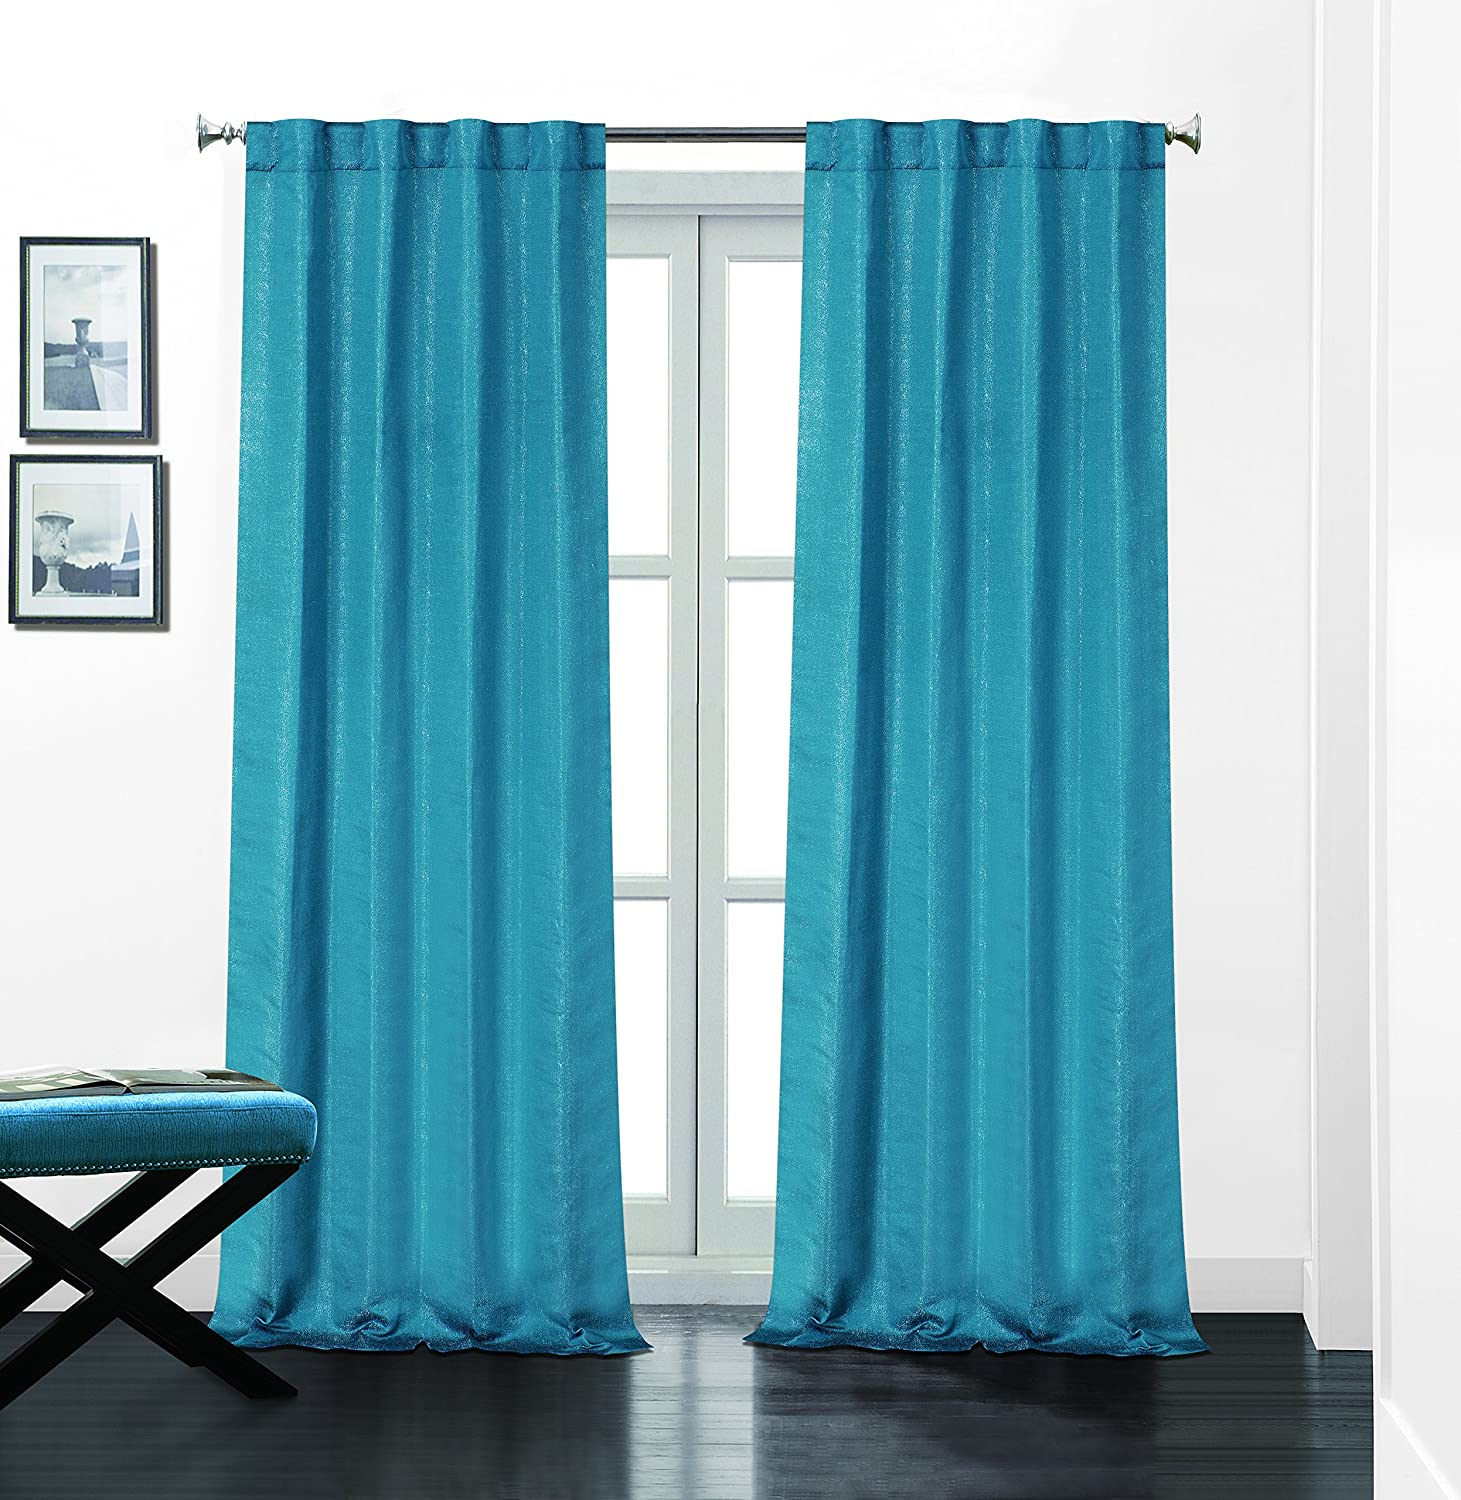 Dainty Home SoHo Blackout with Noice Max 80% OFF Redusi Lining OFFicial shop Roomdarkening